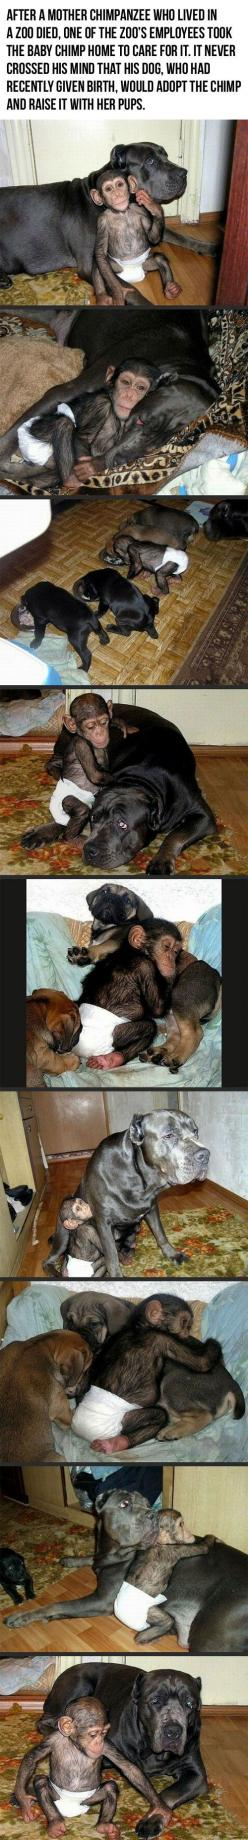 Ohhhhhhhhhhhhhhhhhhhhhhhhhhhhhhhhhhhhhhhh my god this is the cutest thing EVER.: Pet Monkey, Adopts Baby, My Heart, Baby Chimpanzee, Animalss, Baby Monkeys, Dog Adopts